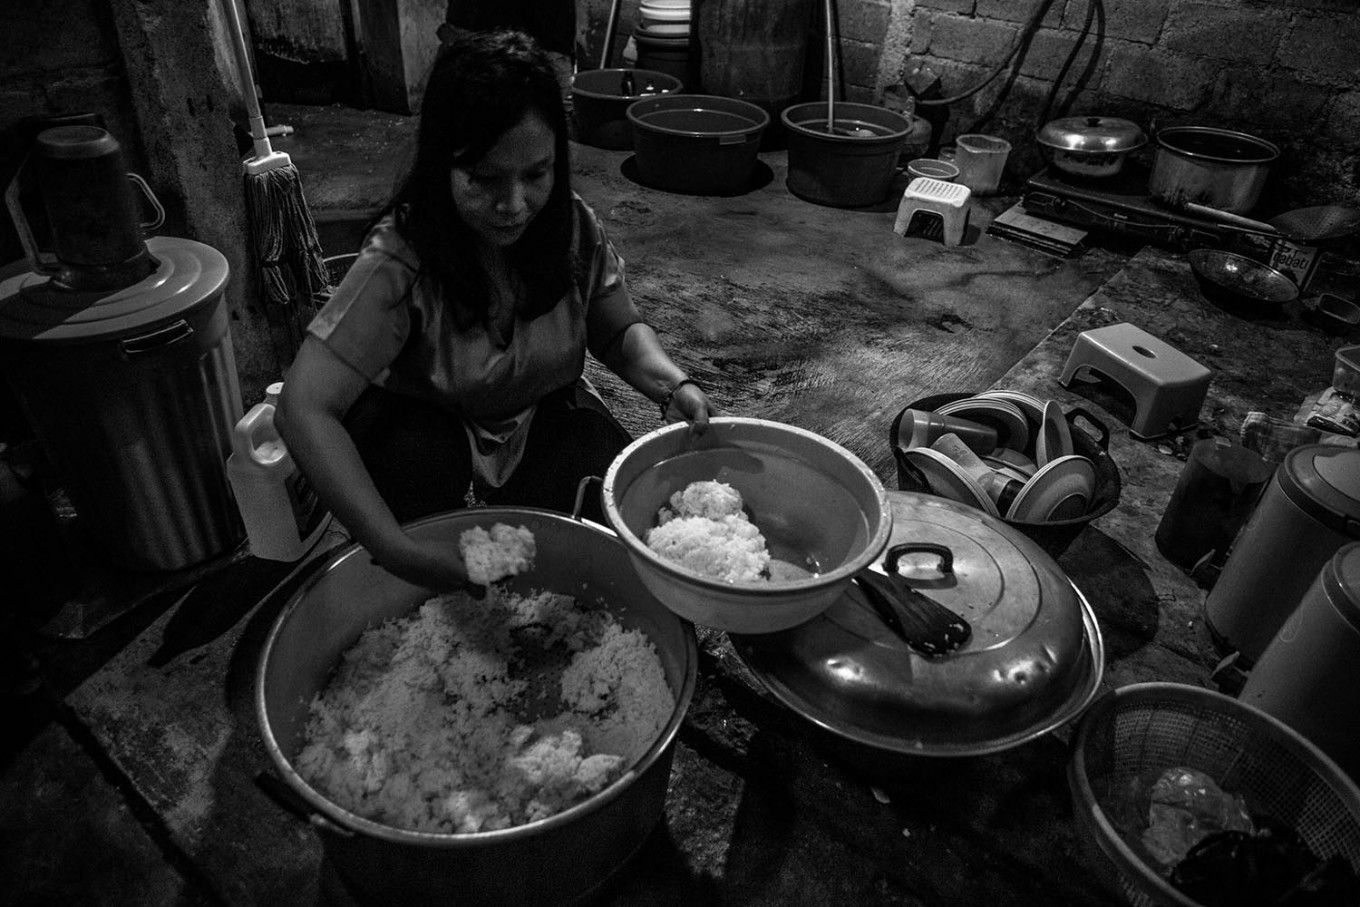 Made with love: Trisna Santi prepares food in the kitchen of Rumah Peduli Sahabat Kasih. JP/Seto Wardhana